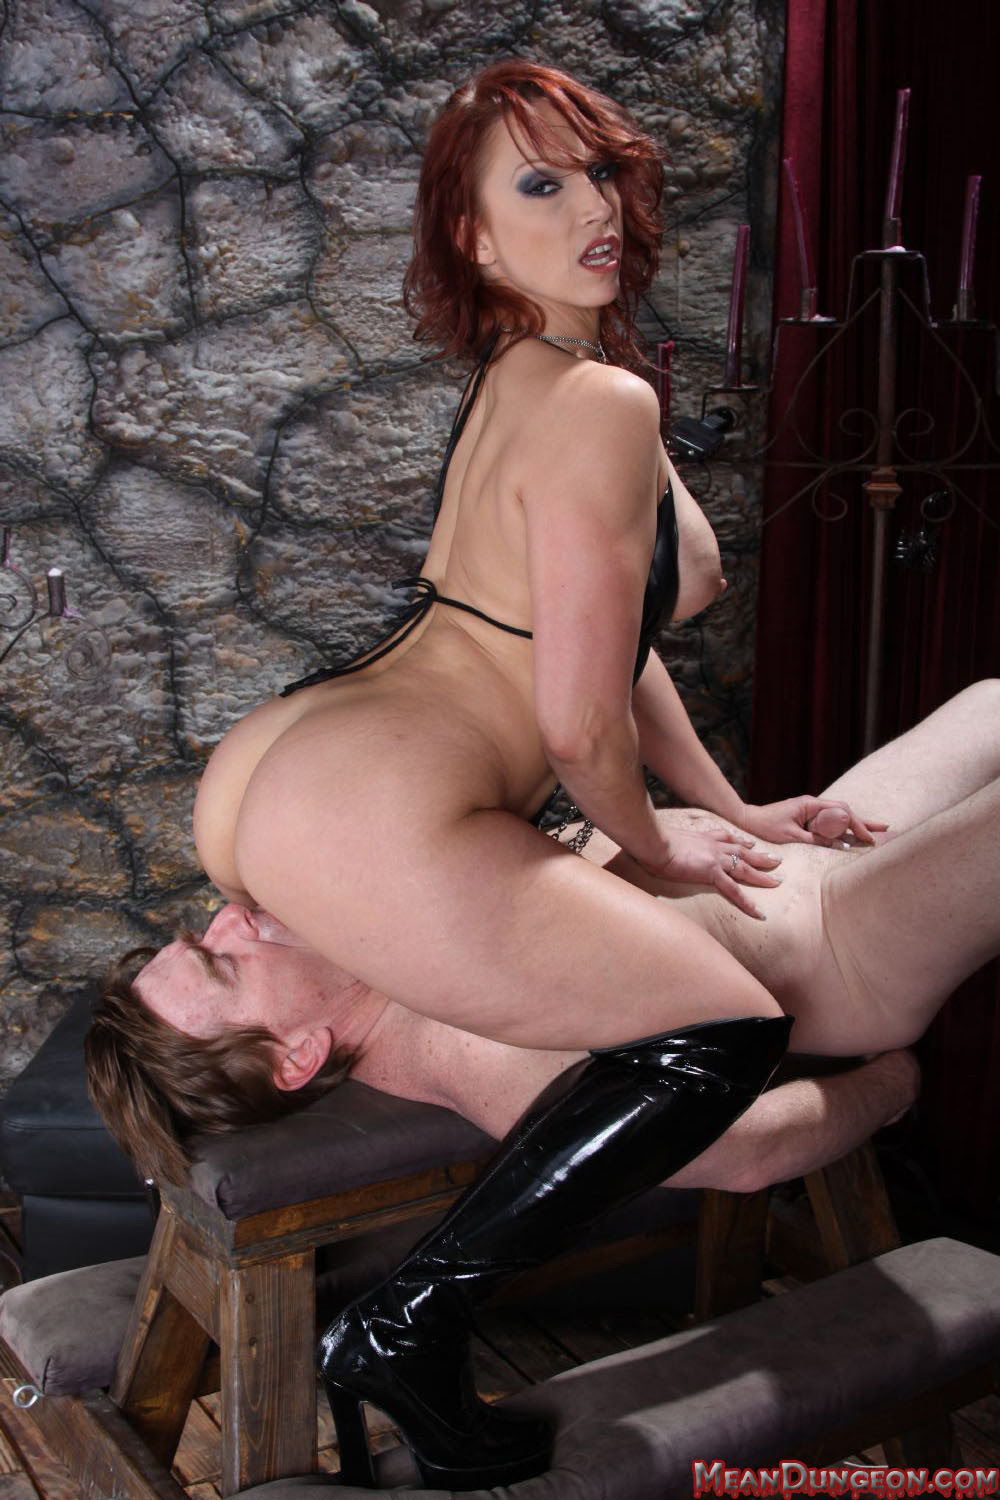 3 dommes 2 slaves amp a rubberdoll 5